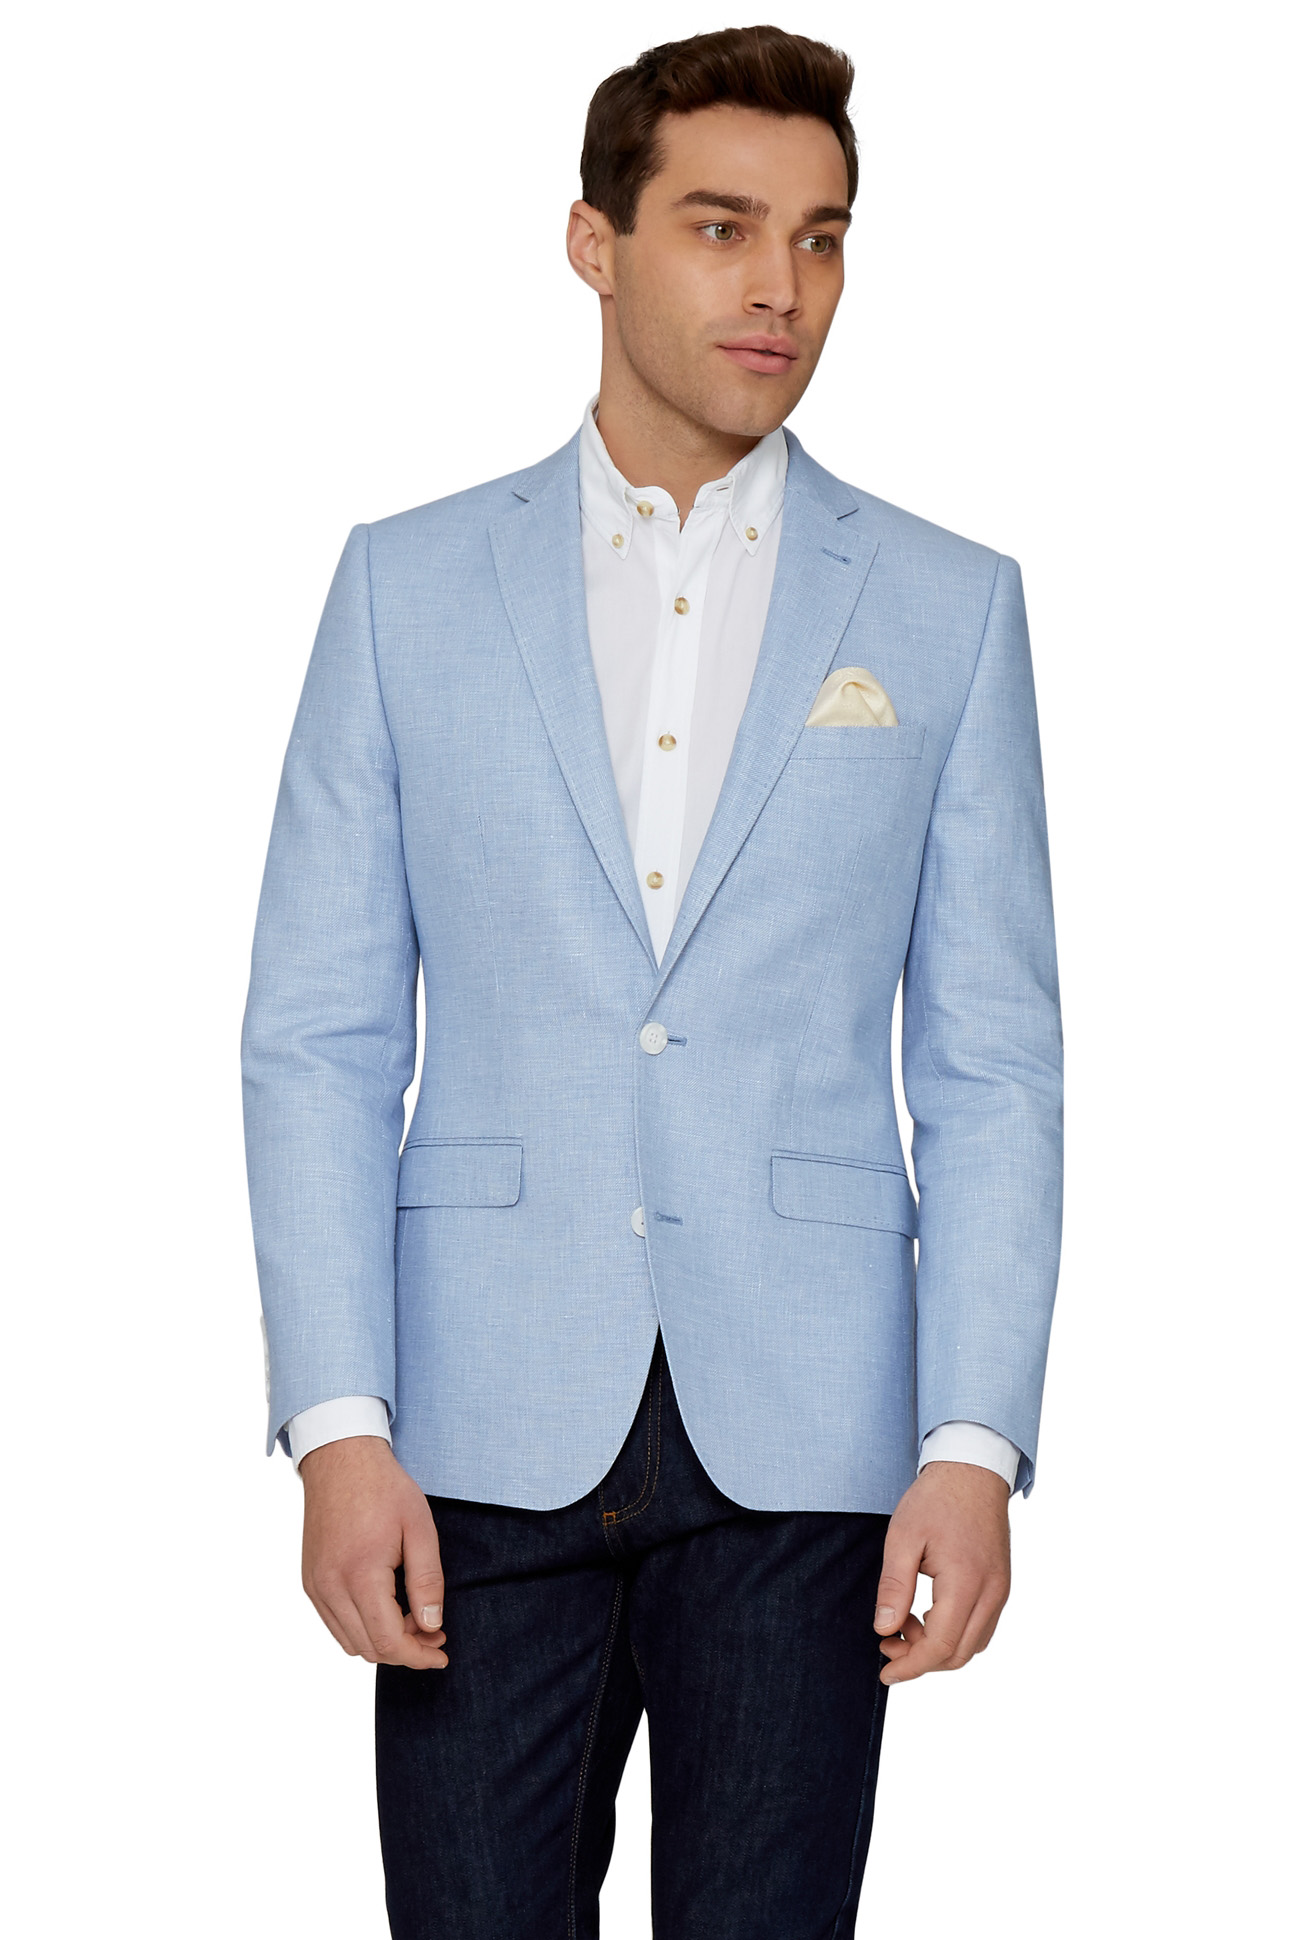 Men's Suits in the Perry Ellis Online Suit Store. Shop the Perry Ellis online suit store to find the perfect men's suits for every occasion. Whether it's for a wedding, business or in between, a slim fit, skinny, classic or tailored suit adds style to your wardrobe.